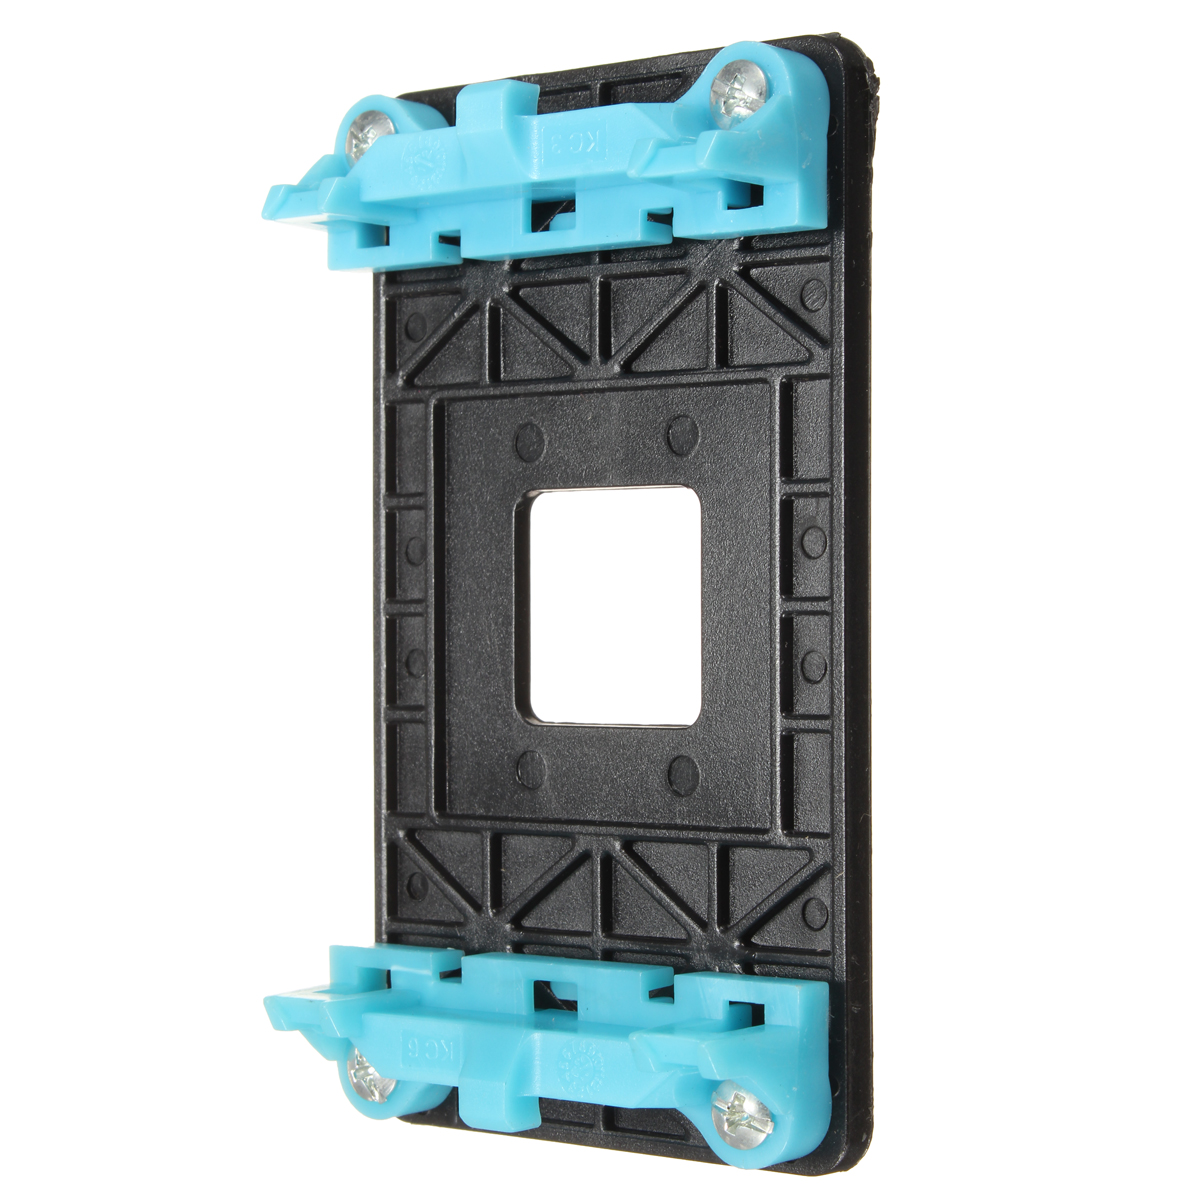 Heat Sink Retention Module Bracket Backplate Black For AM2//AM3//AM